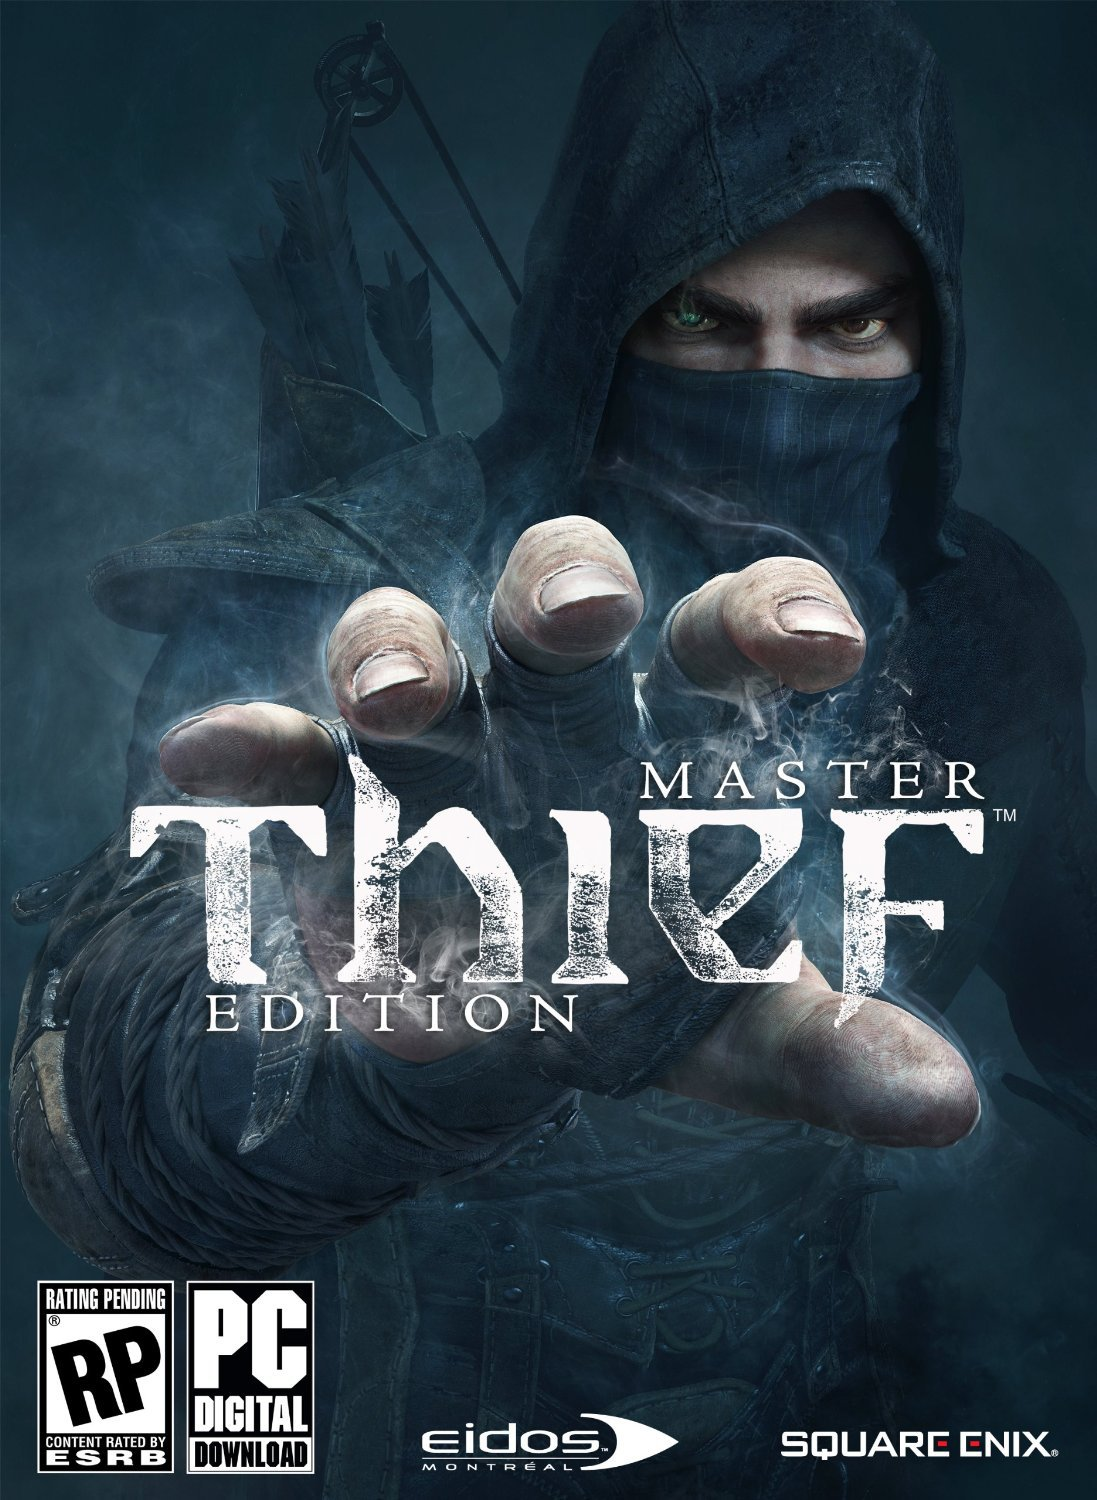 Thief: Master Thief Edition Windows PC Game Download Steam CD-Key Global